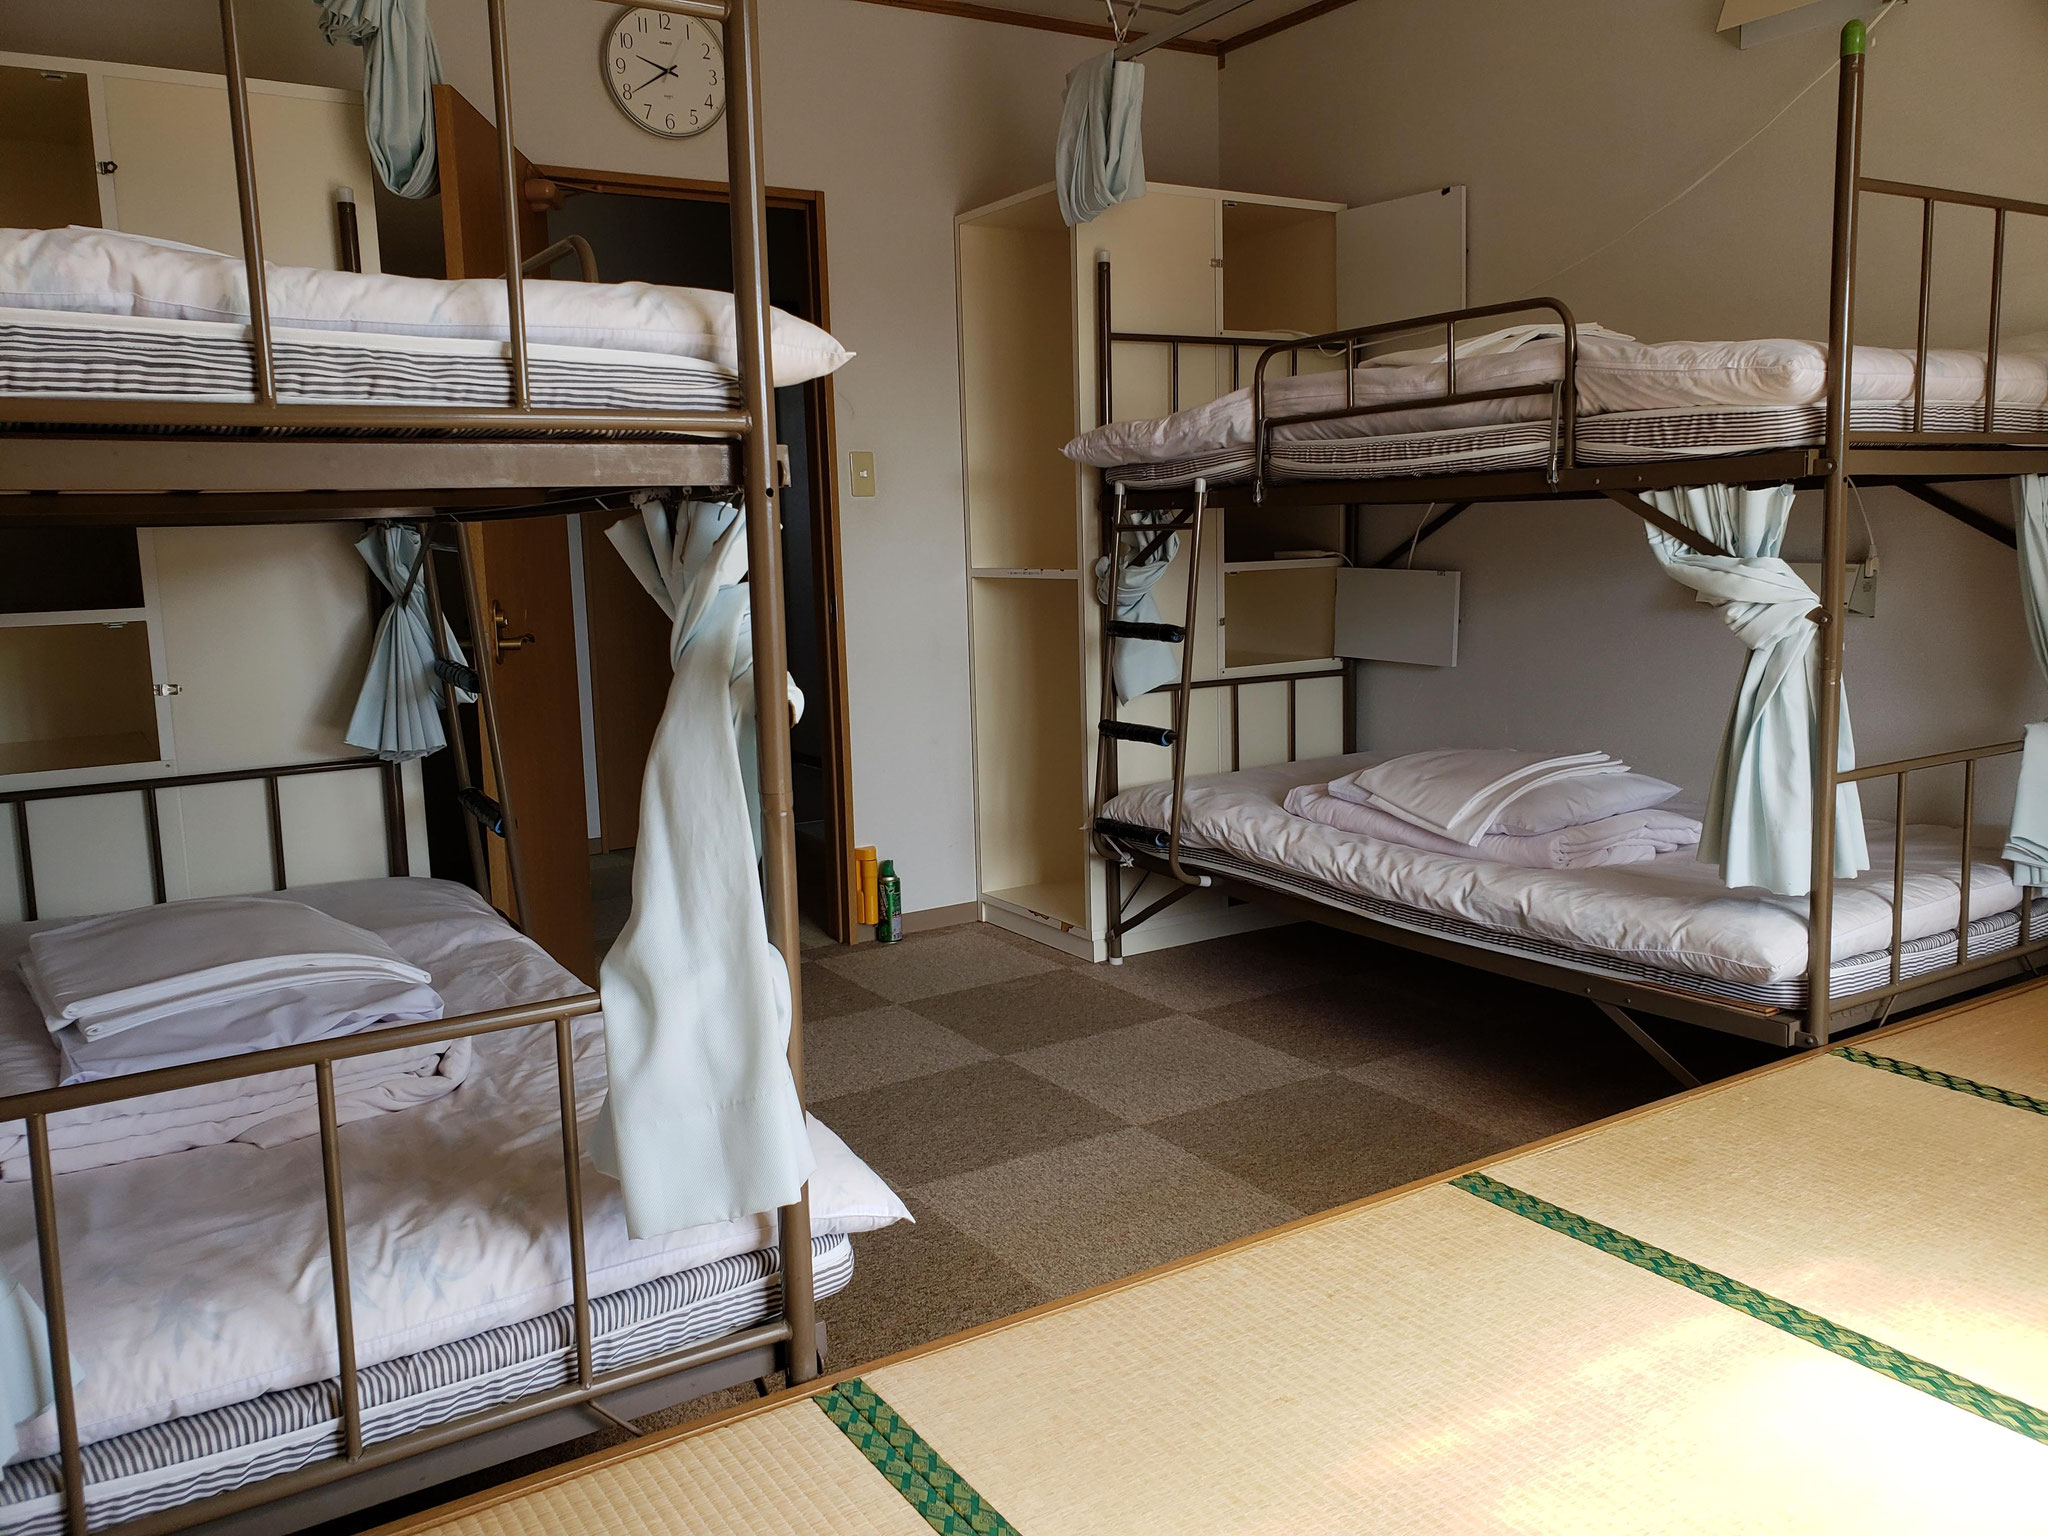 official】 Youth Hostel Best price guarantee - 【港から徒歩10分♪ 10